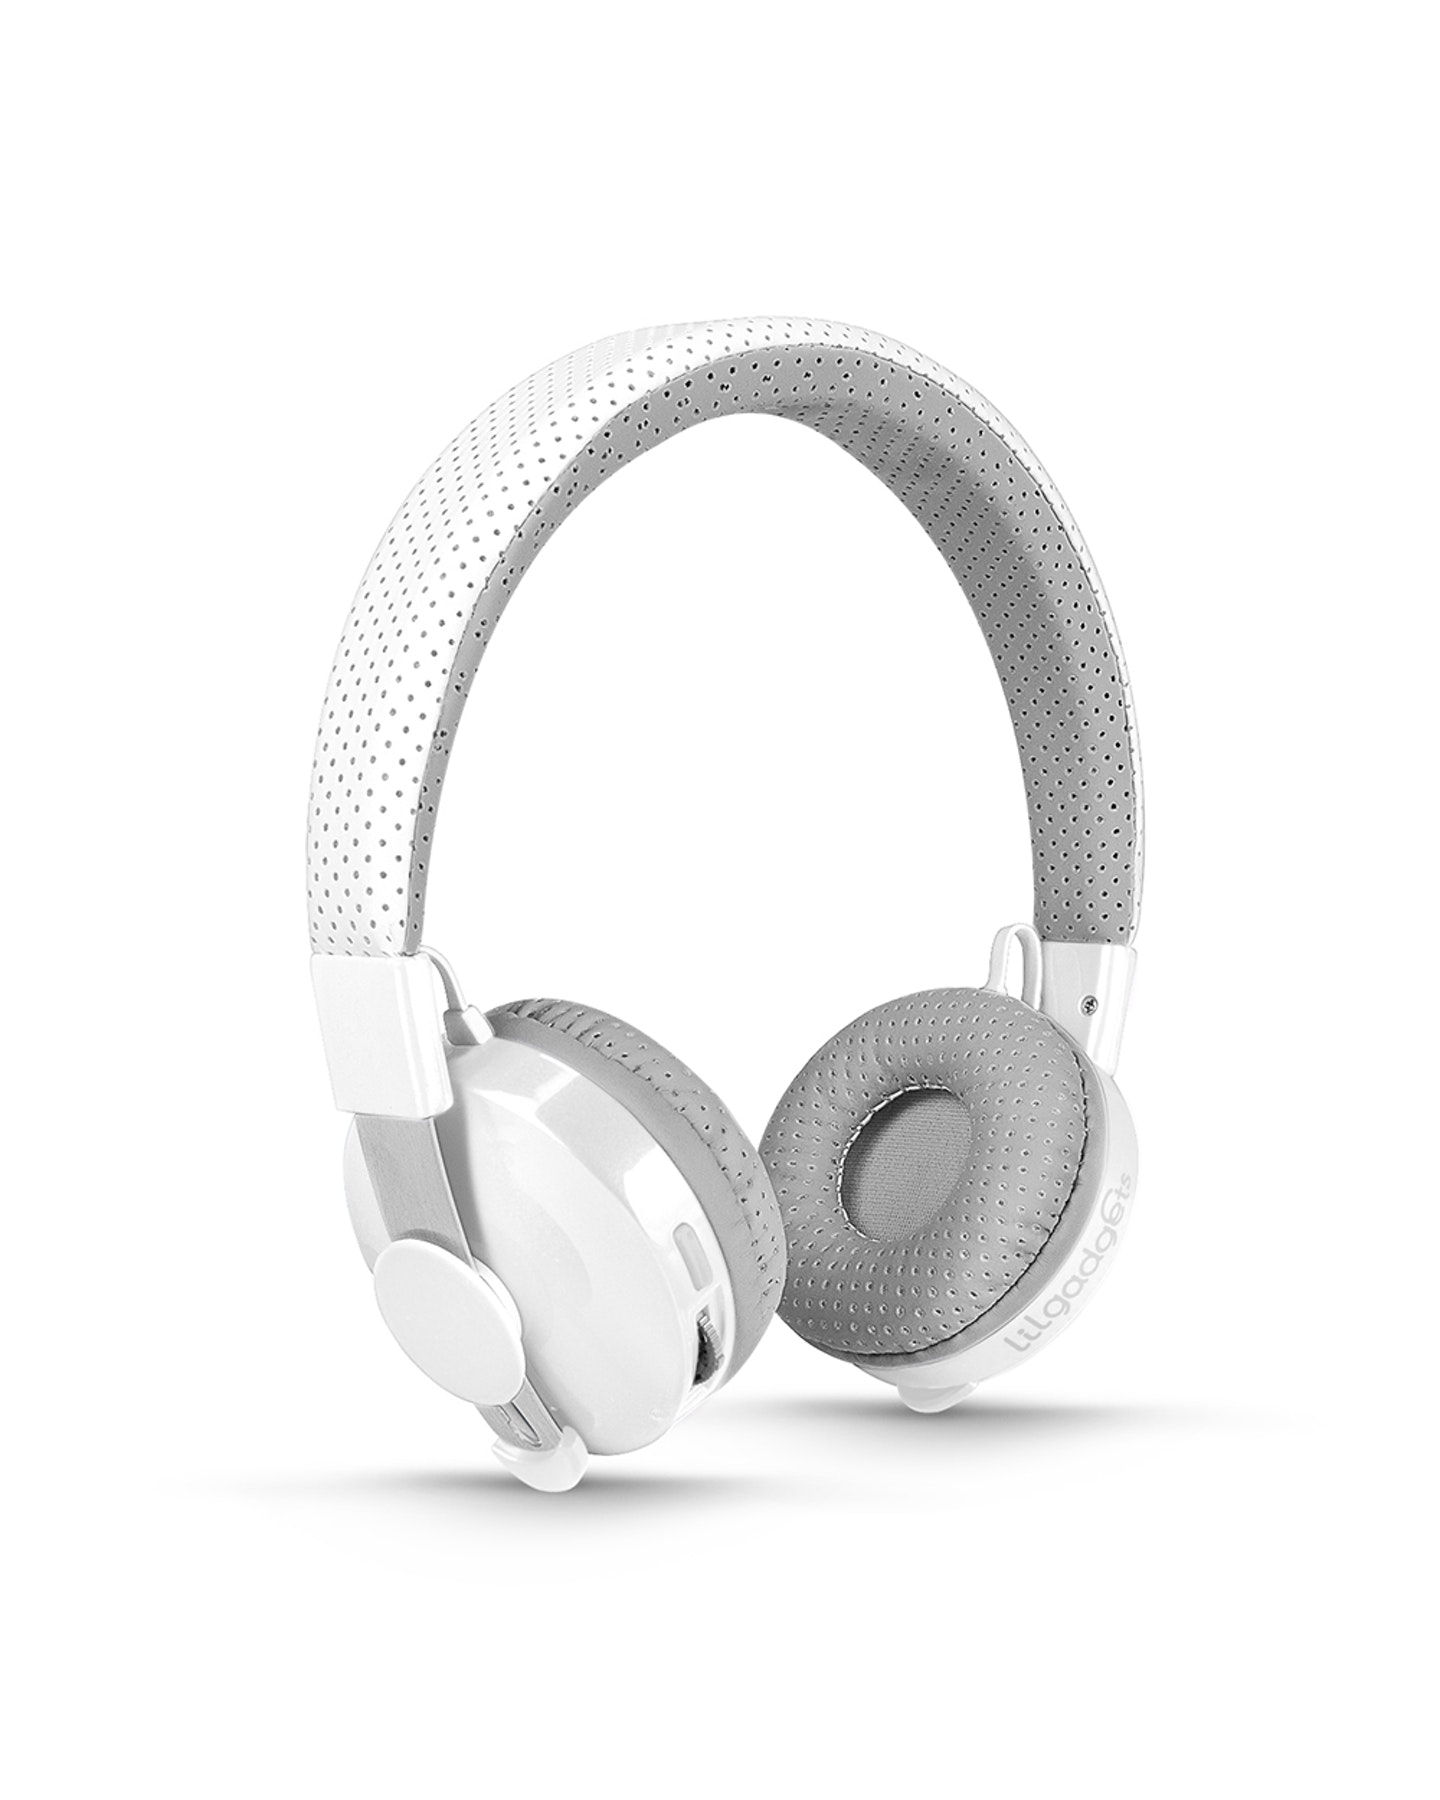 Lil Gadgets Untangled Pro Children'S Wireless Bluetooth Headphones White